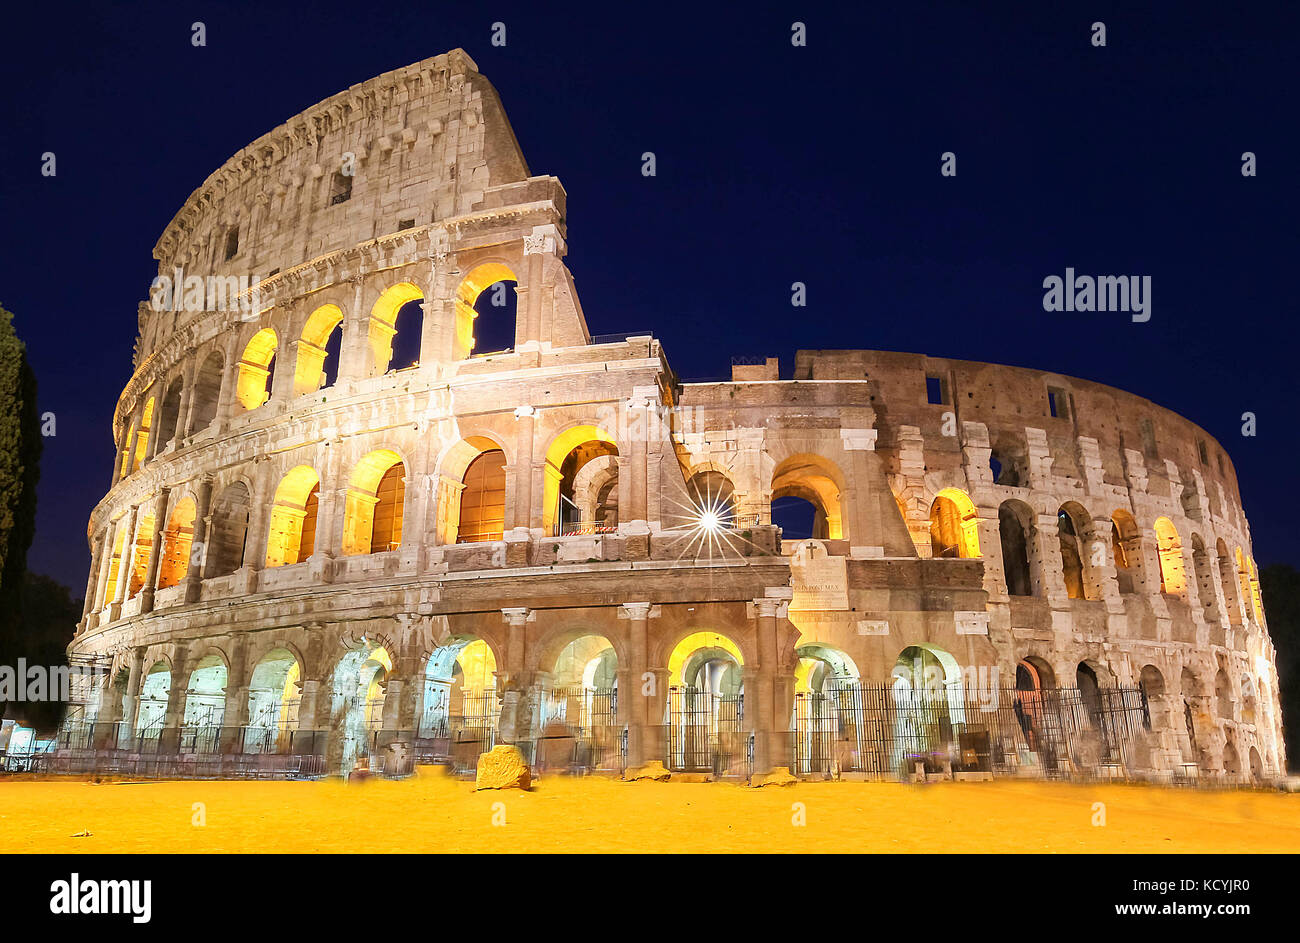 The famous Colosseum at night, Rome, Italy. - Stock Image